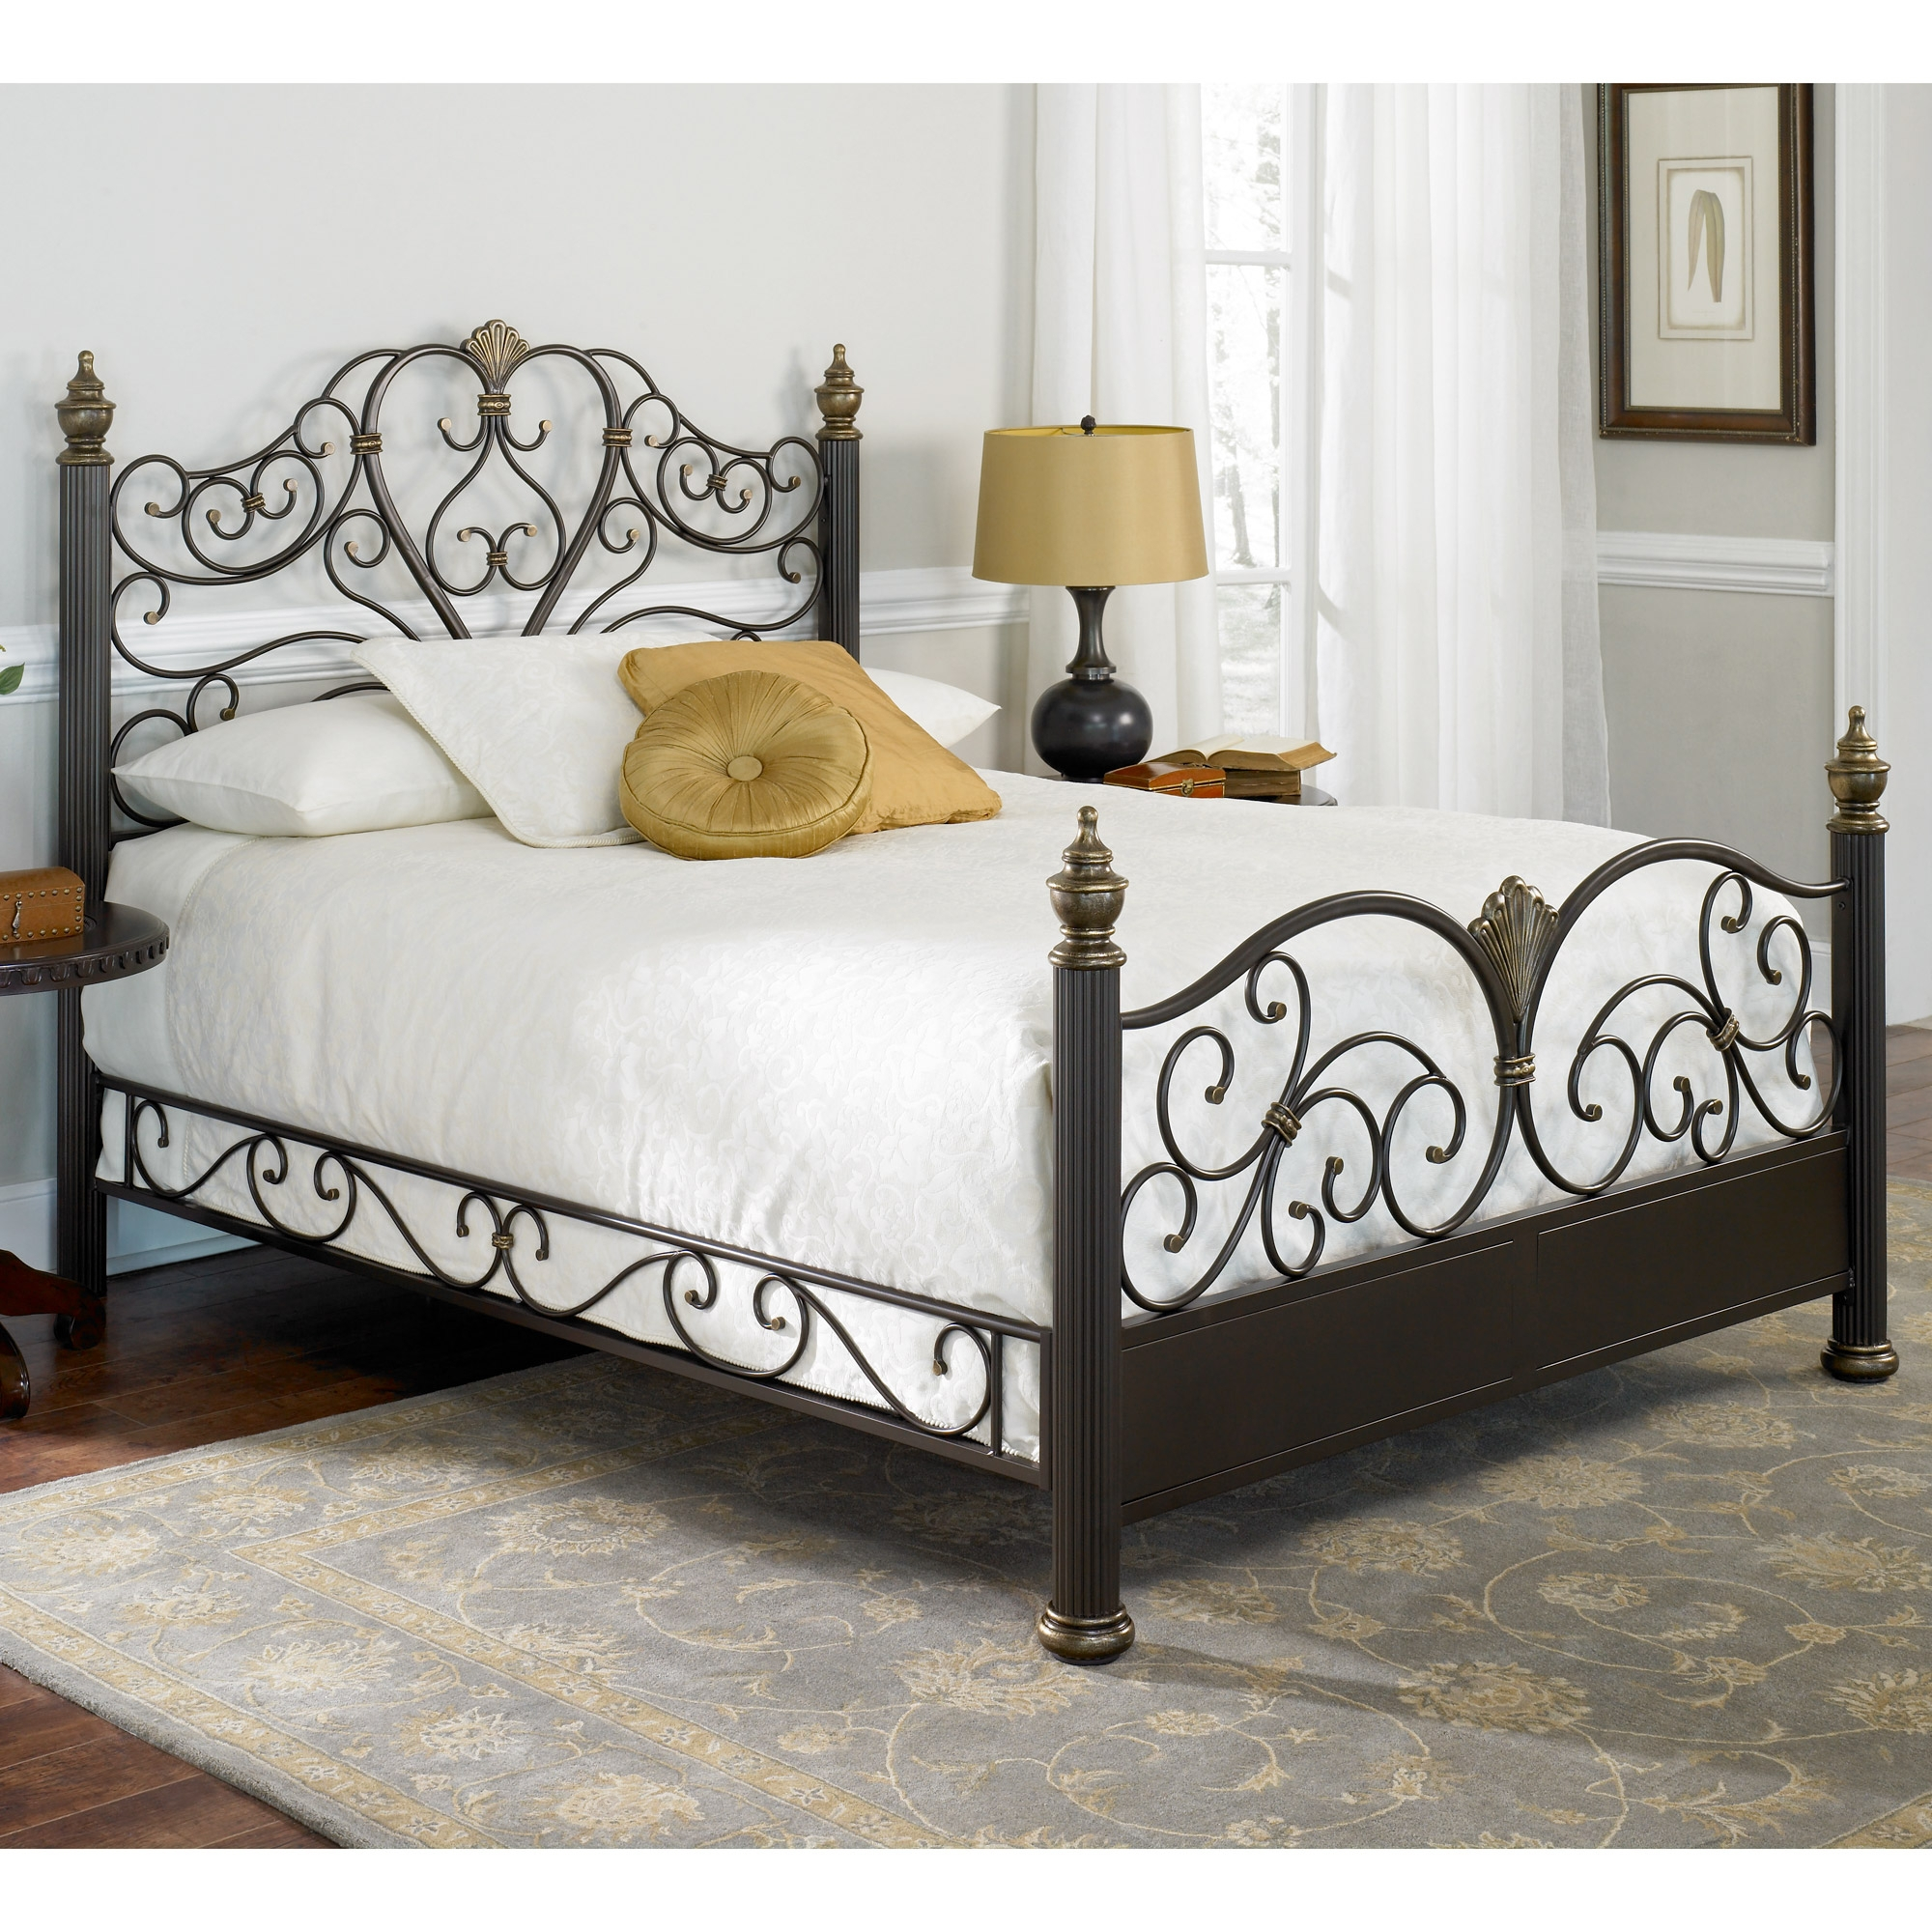 Gothic Double Bed Frame